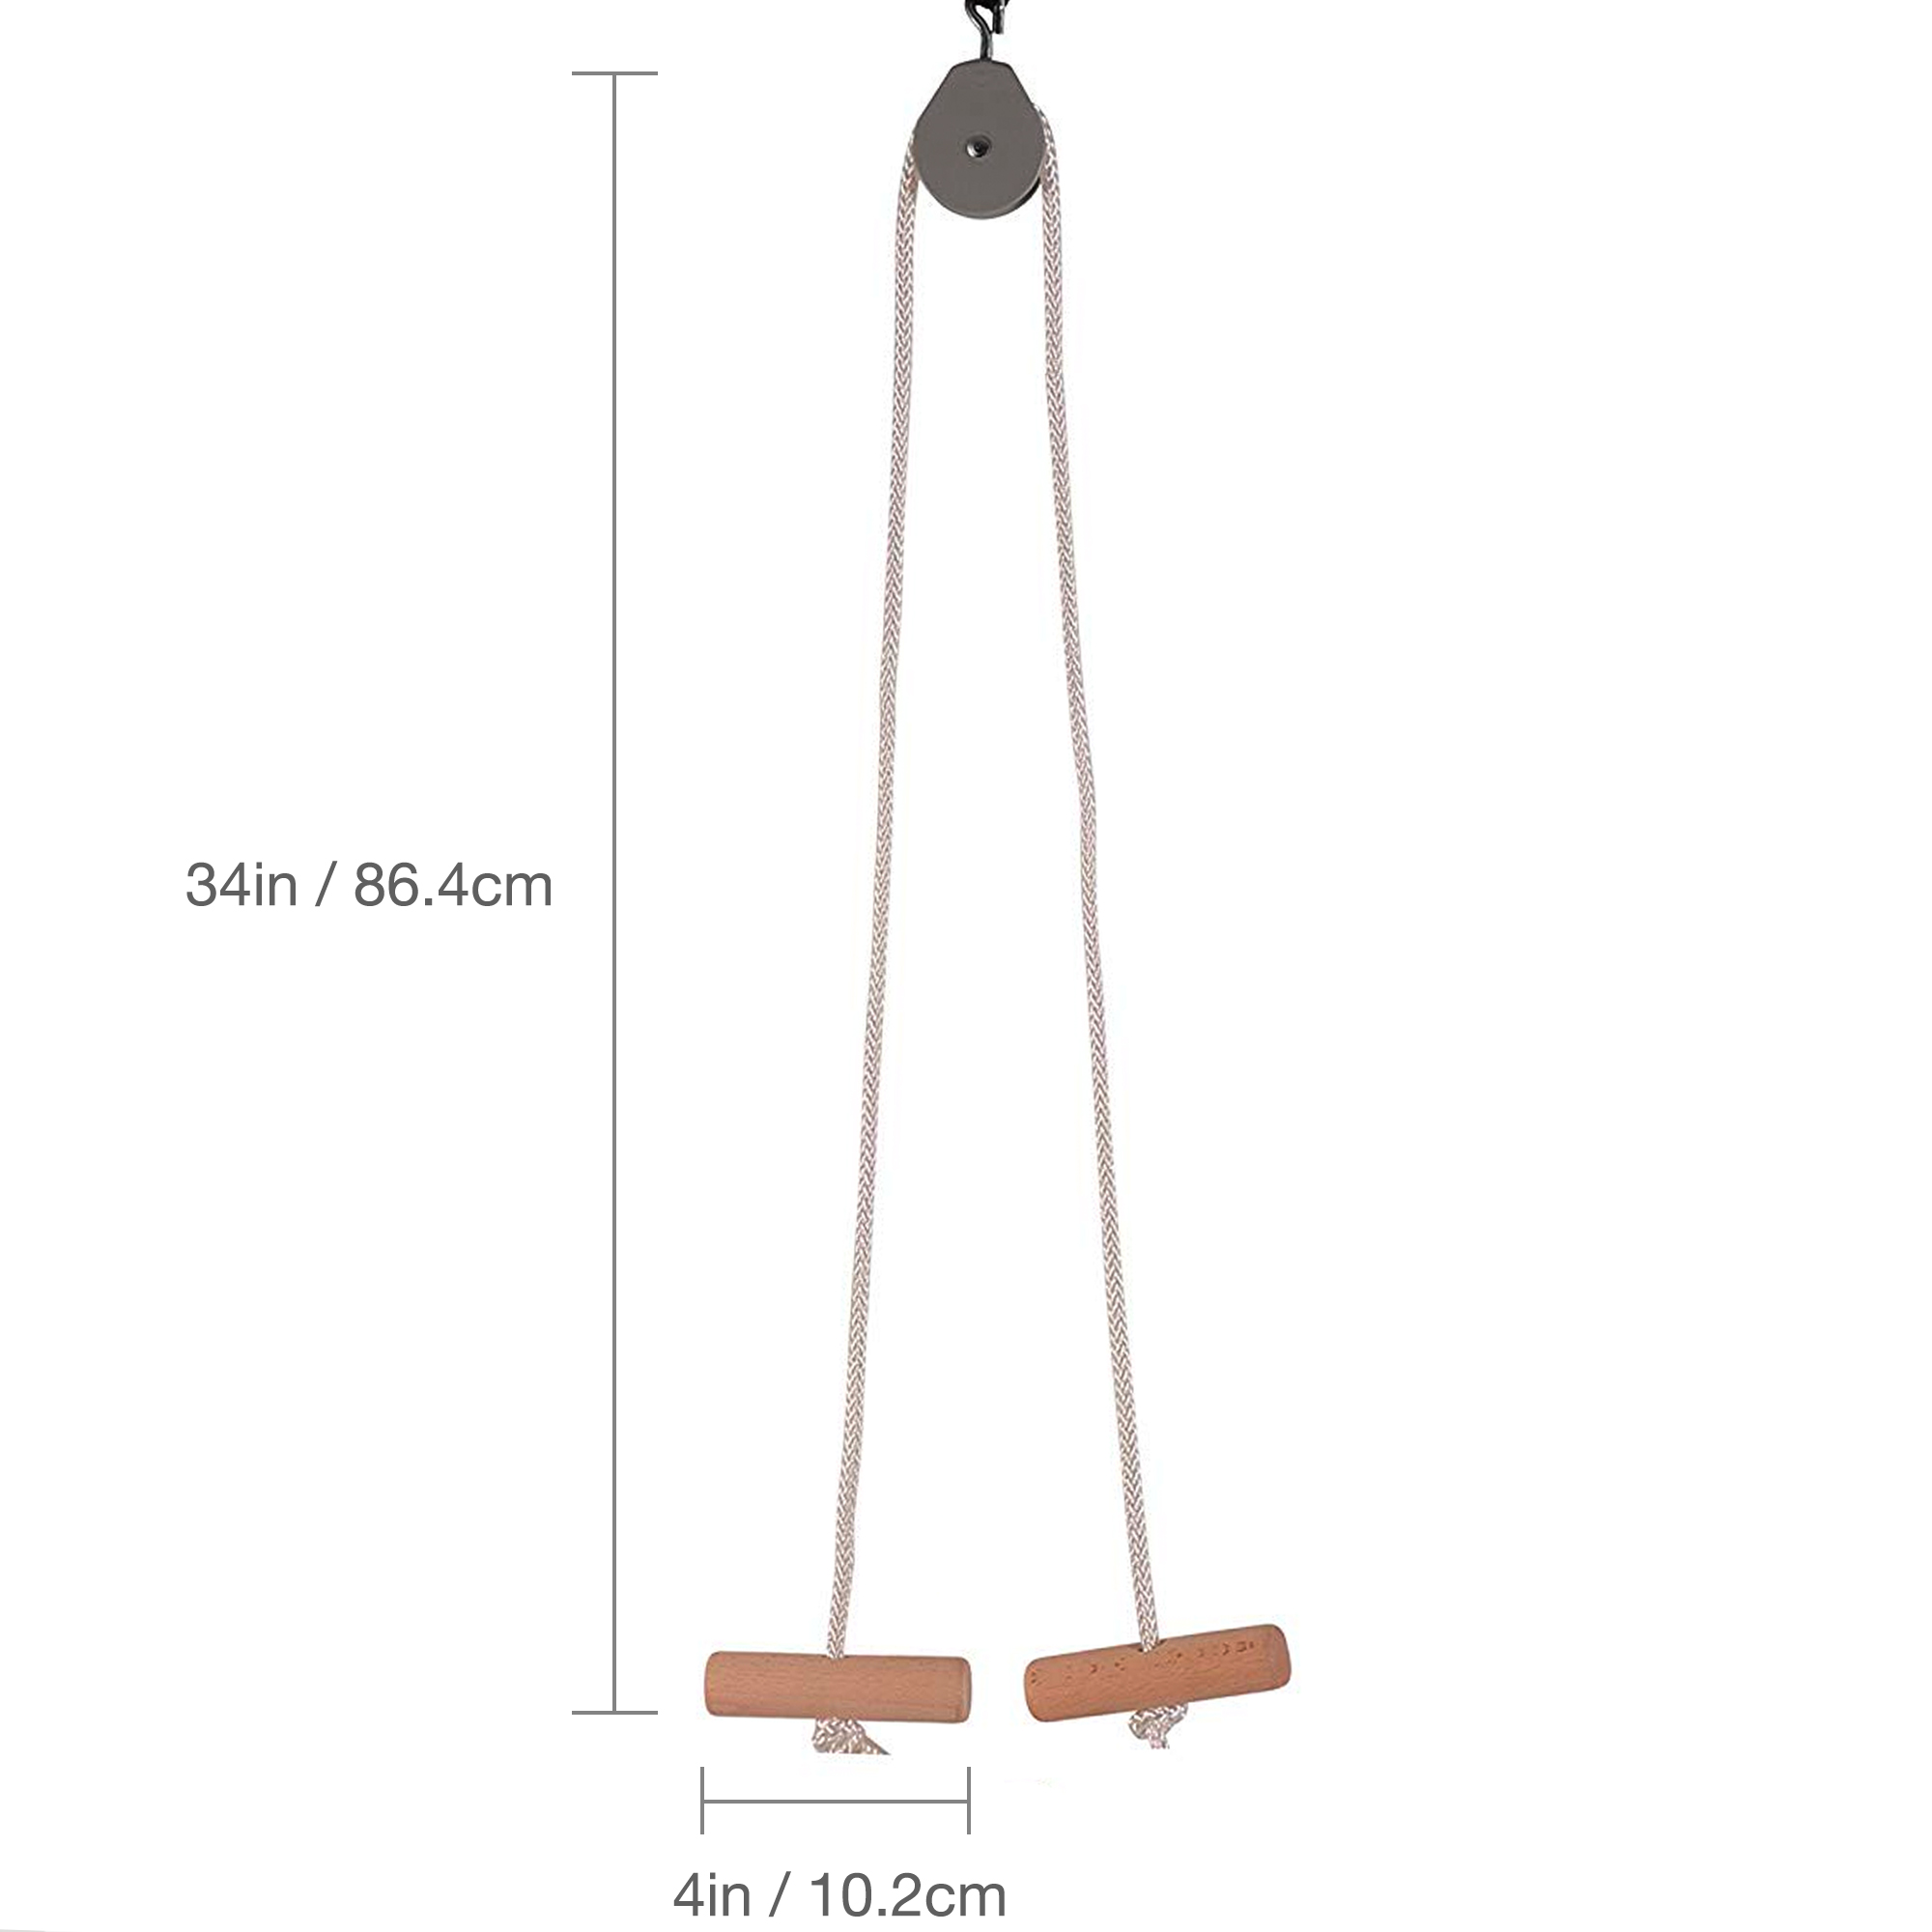 Stretch Ranger Deluxe Pulley  Helps improve the range of motion in shoulders